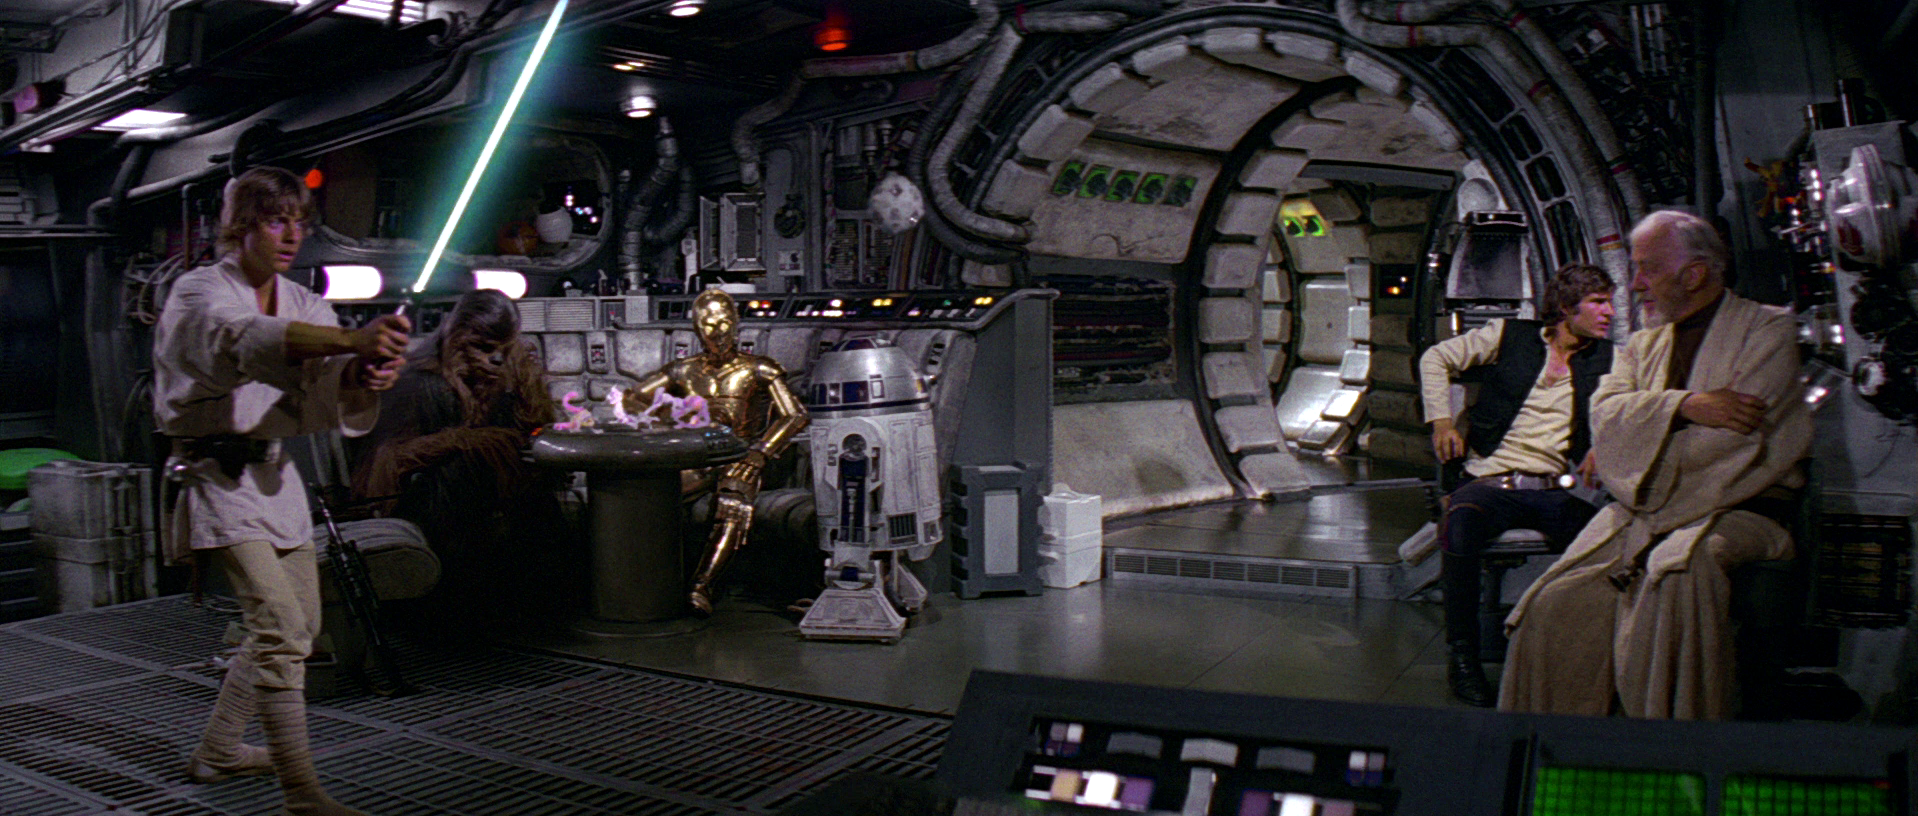 falcon lounge Ranking: Every Star Wars Movie and Series from Worst to Best